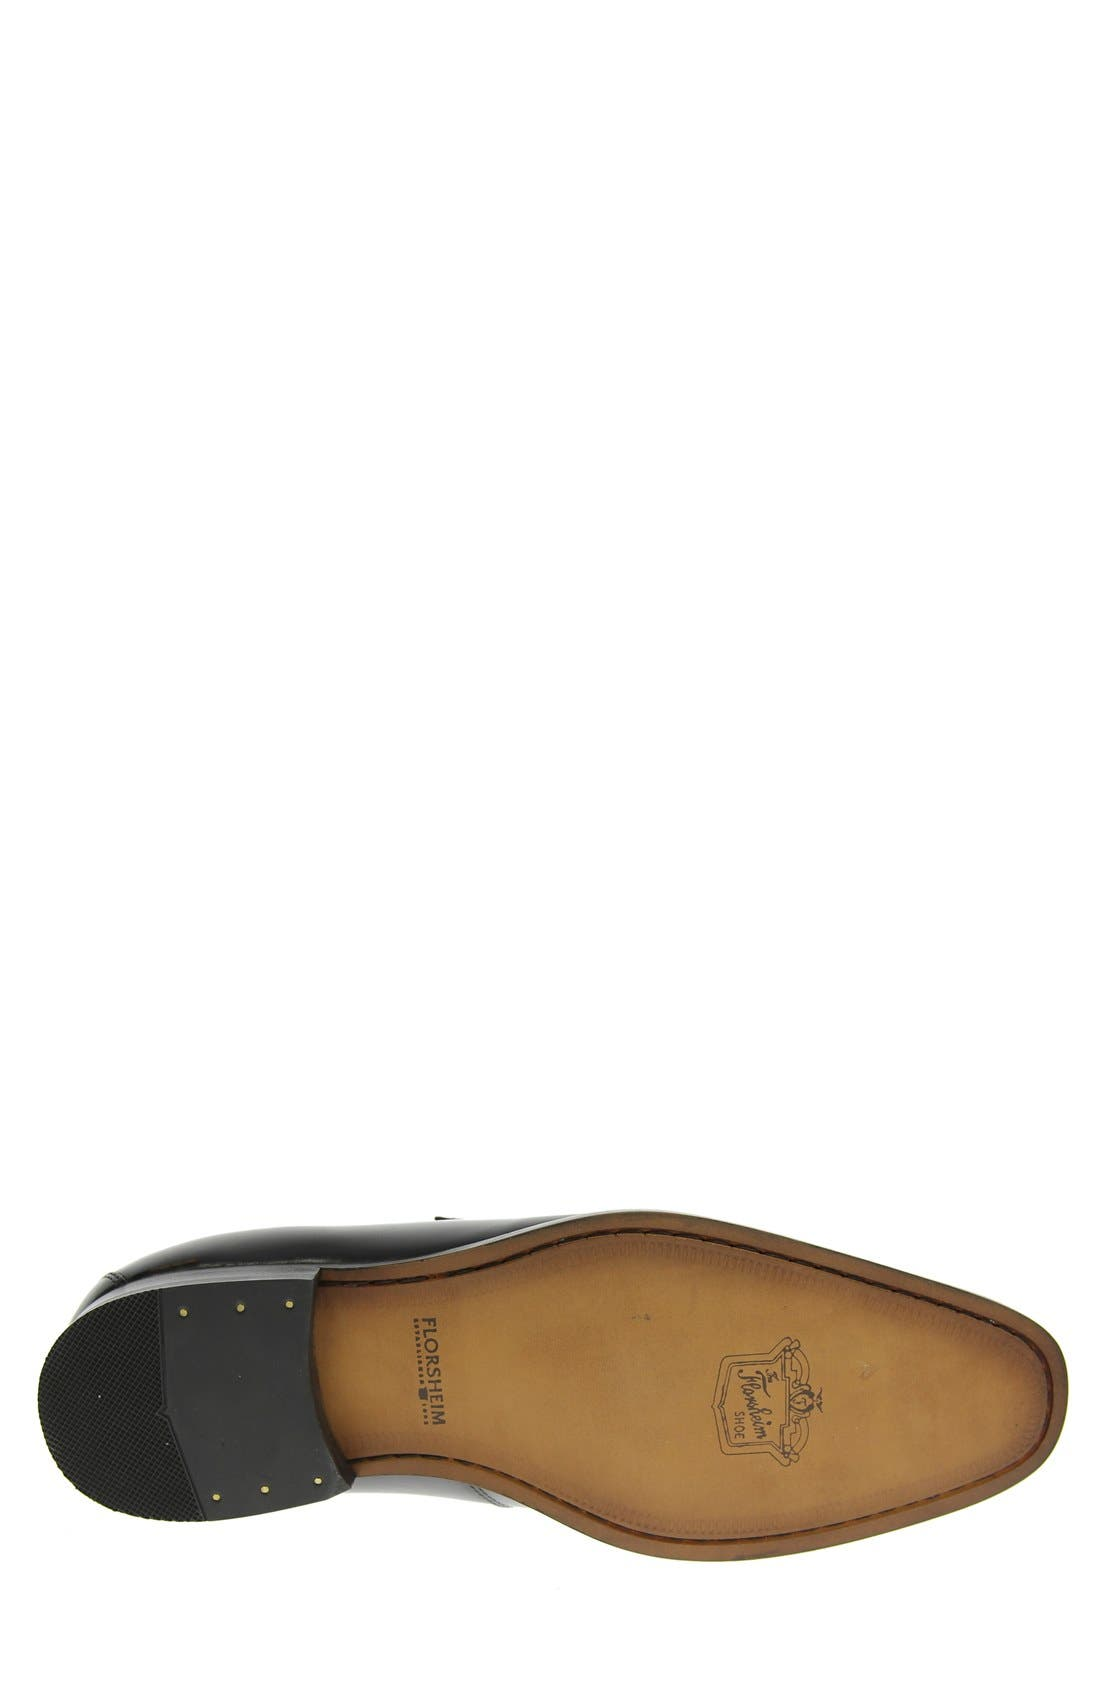 'Sabato' Penny Loafer,                             Alternate thumbnail 7, color,